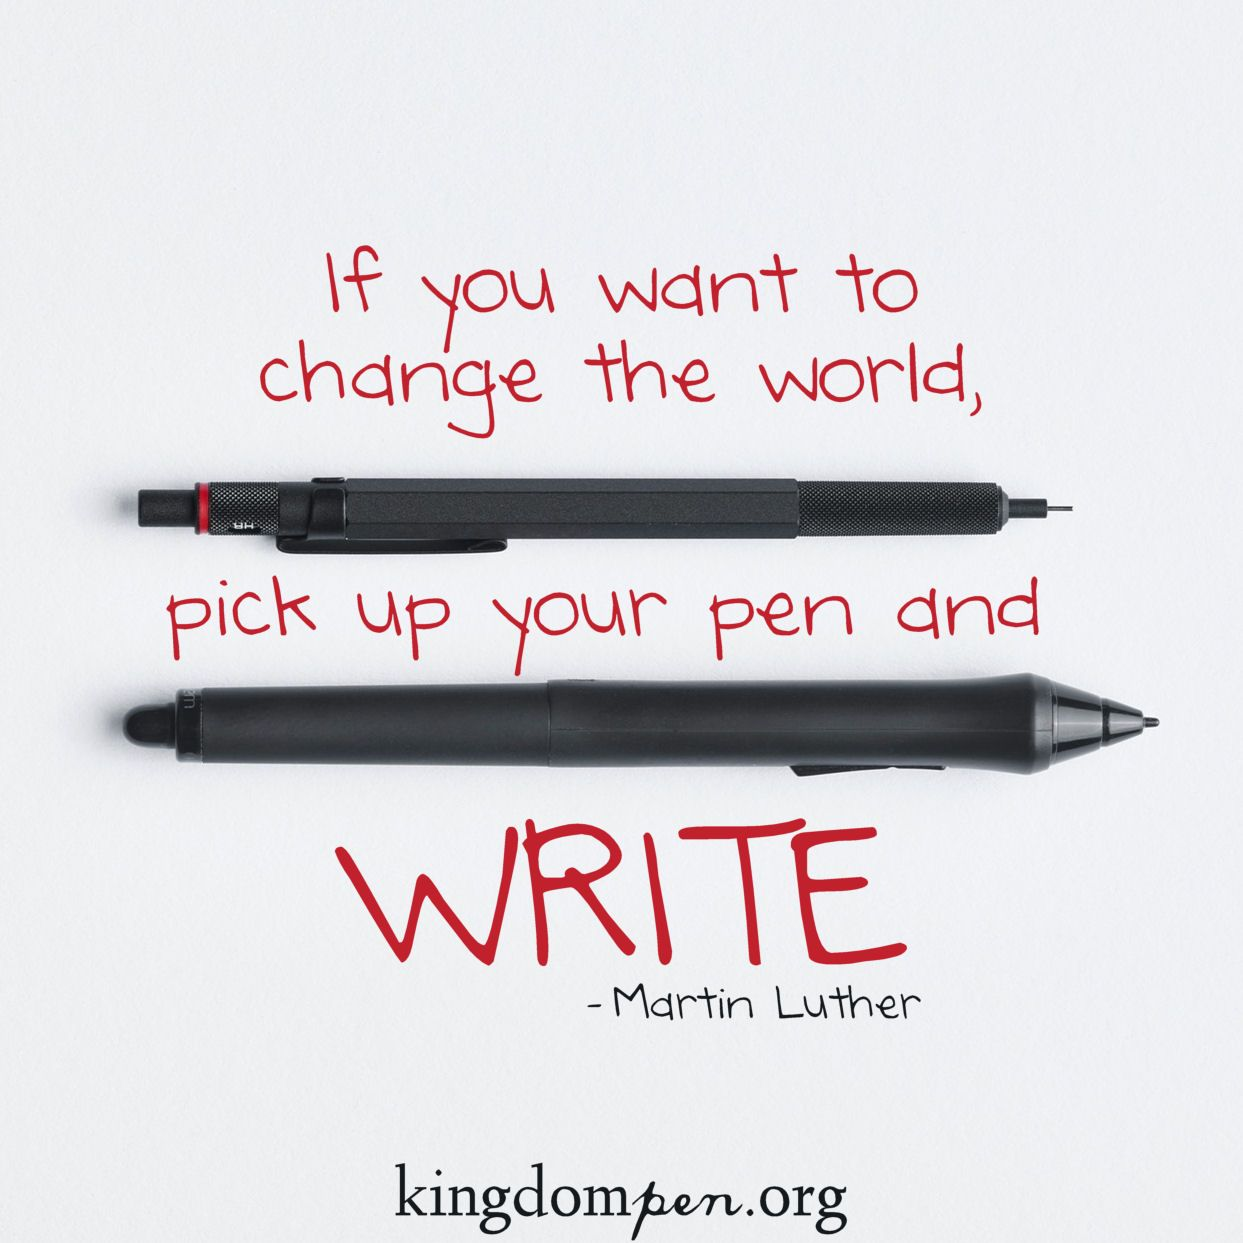 kingdom pen writing quotes kingdom pen quotes kingdom pen writing quotes